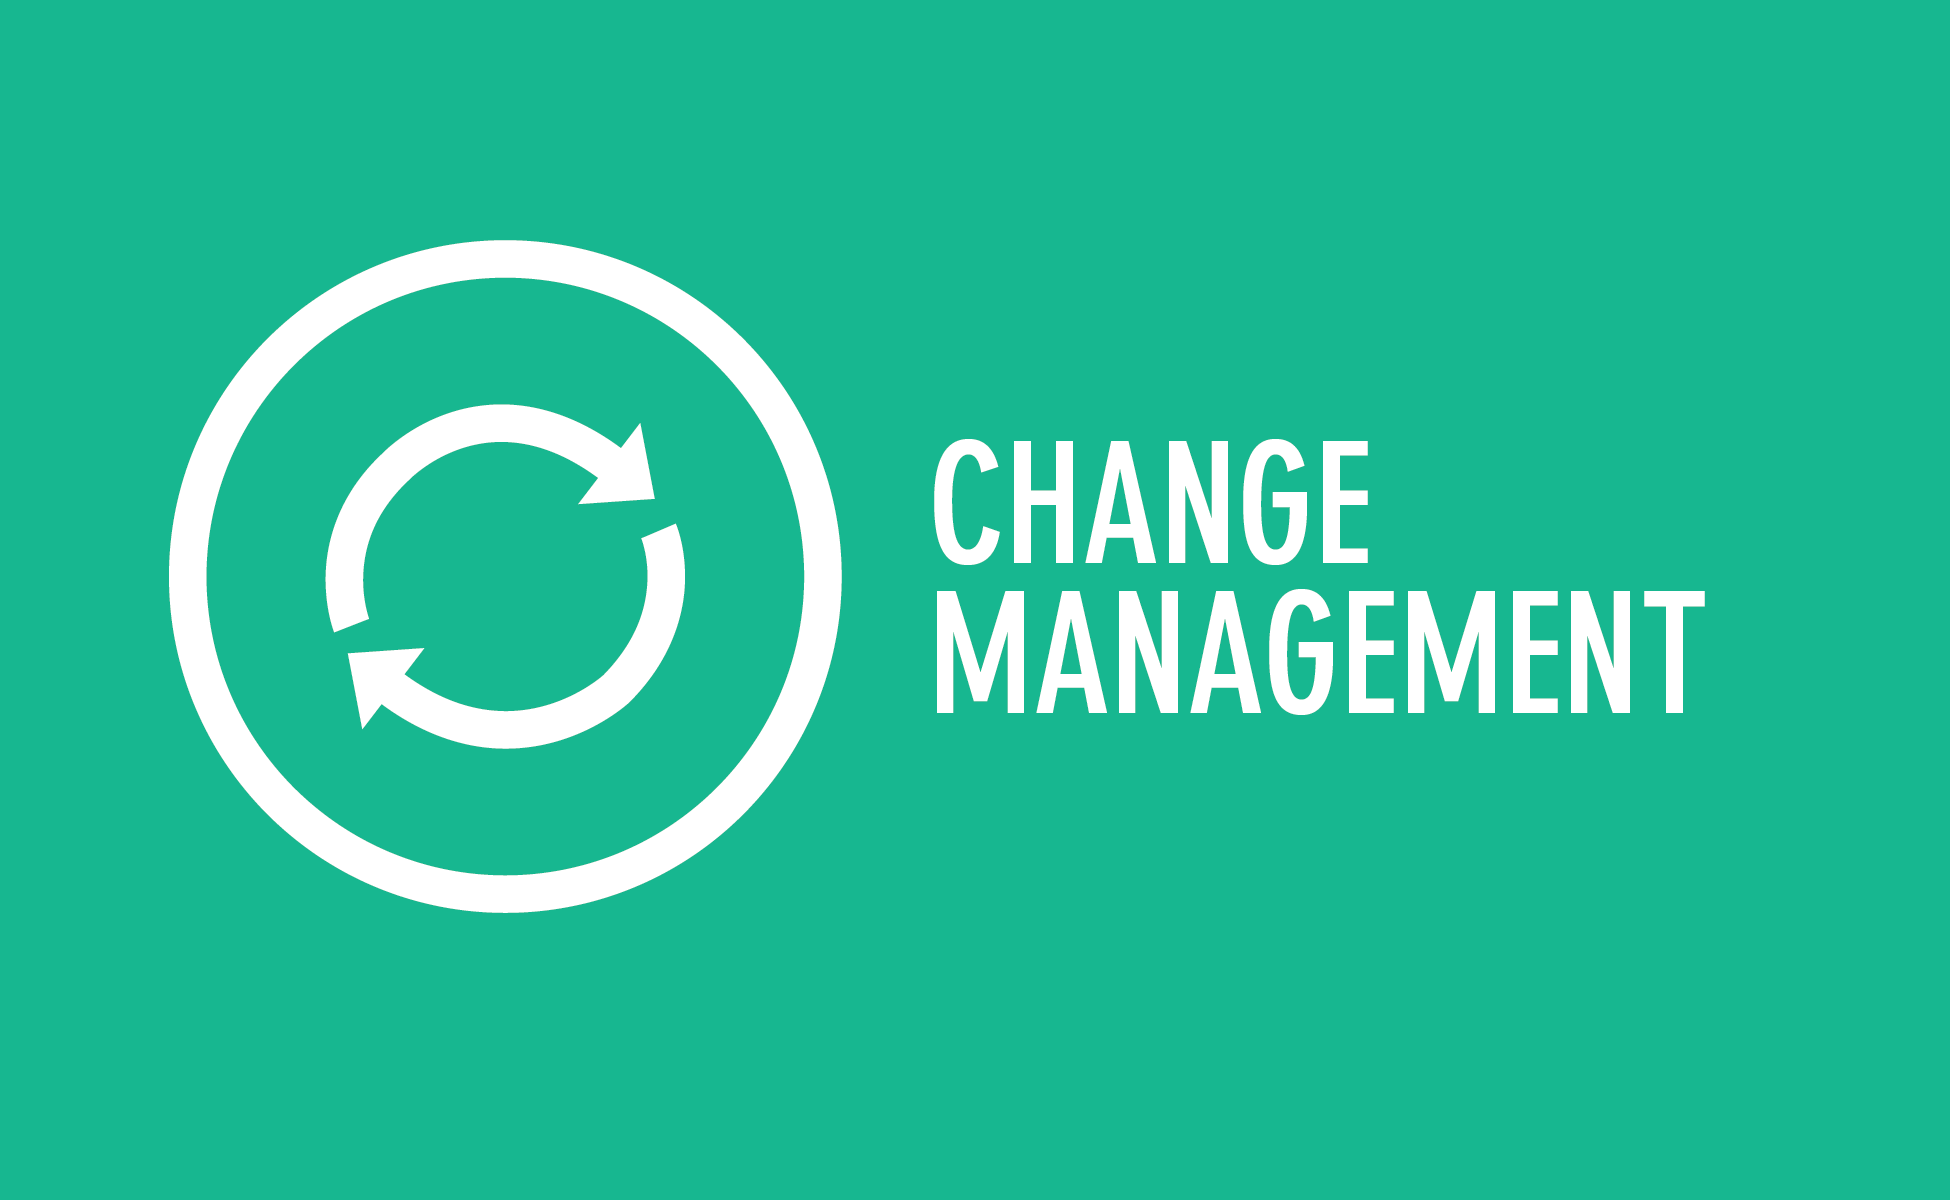 Change Management-03.png